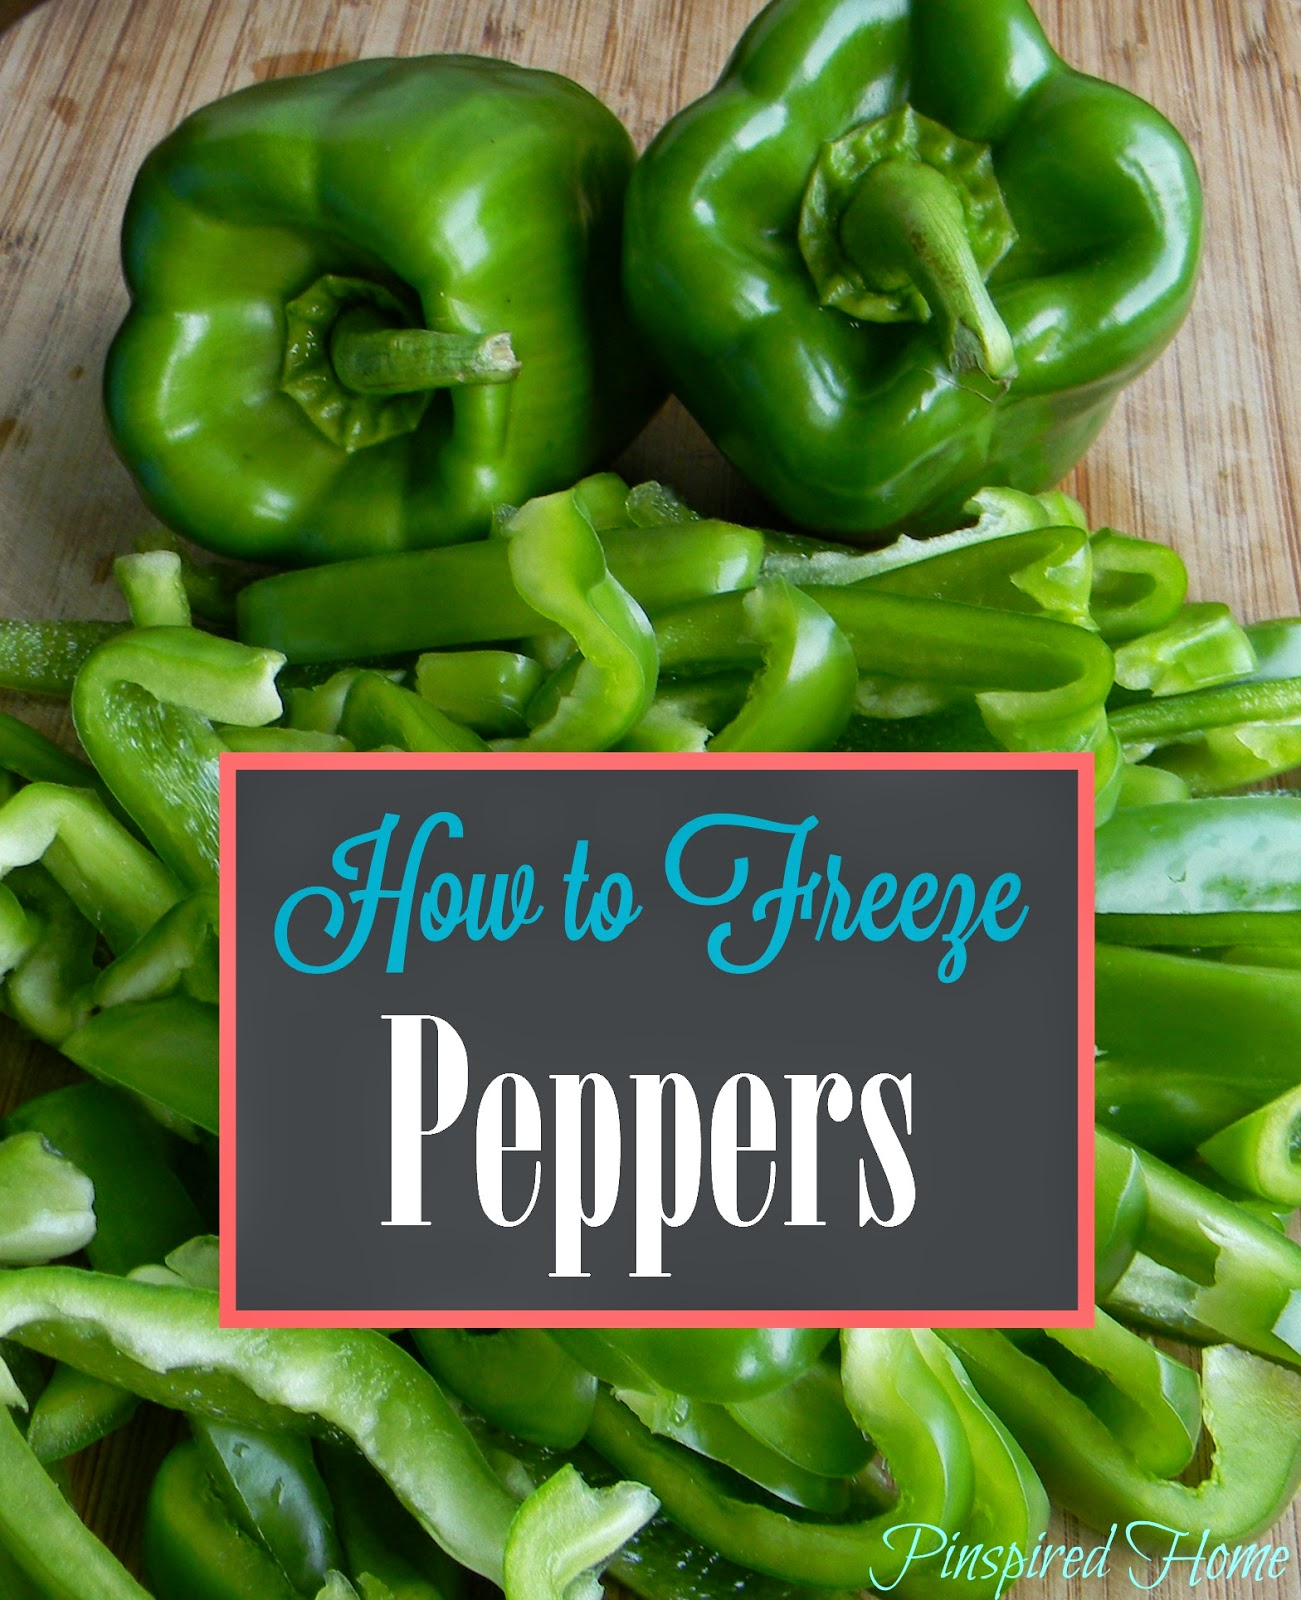 http://pinspiredhome.blogspot.com/2014/08/how-to-freeze-peppers.html